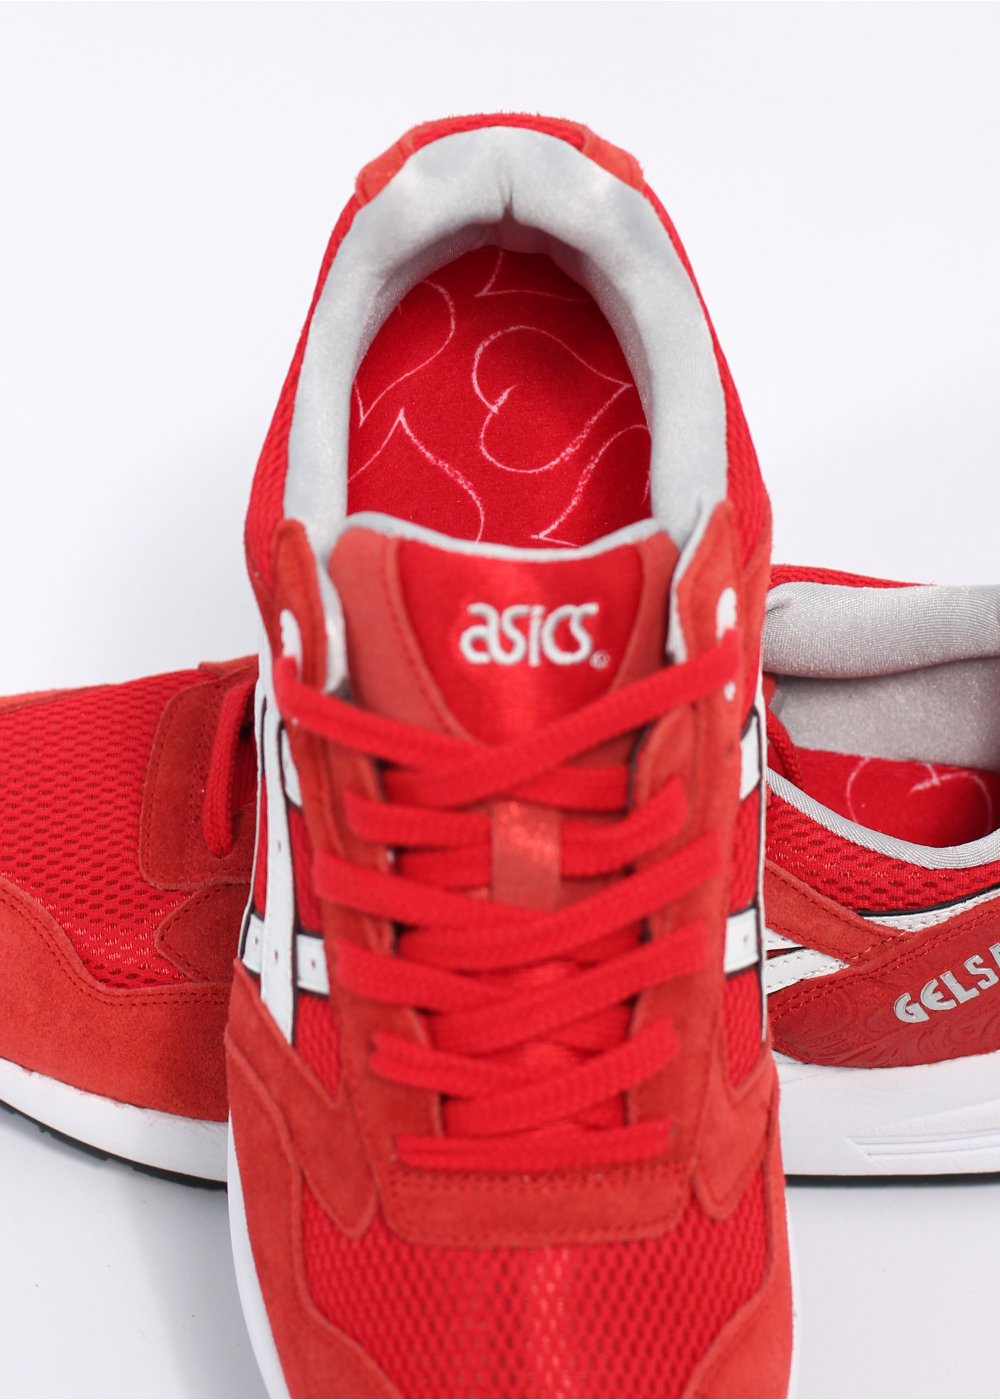 asics red trainers